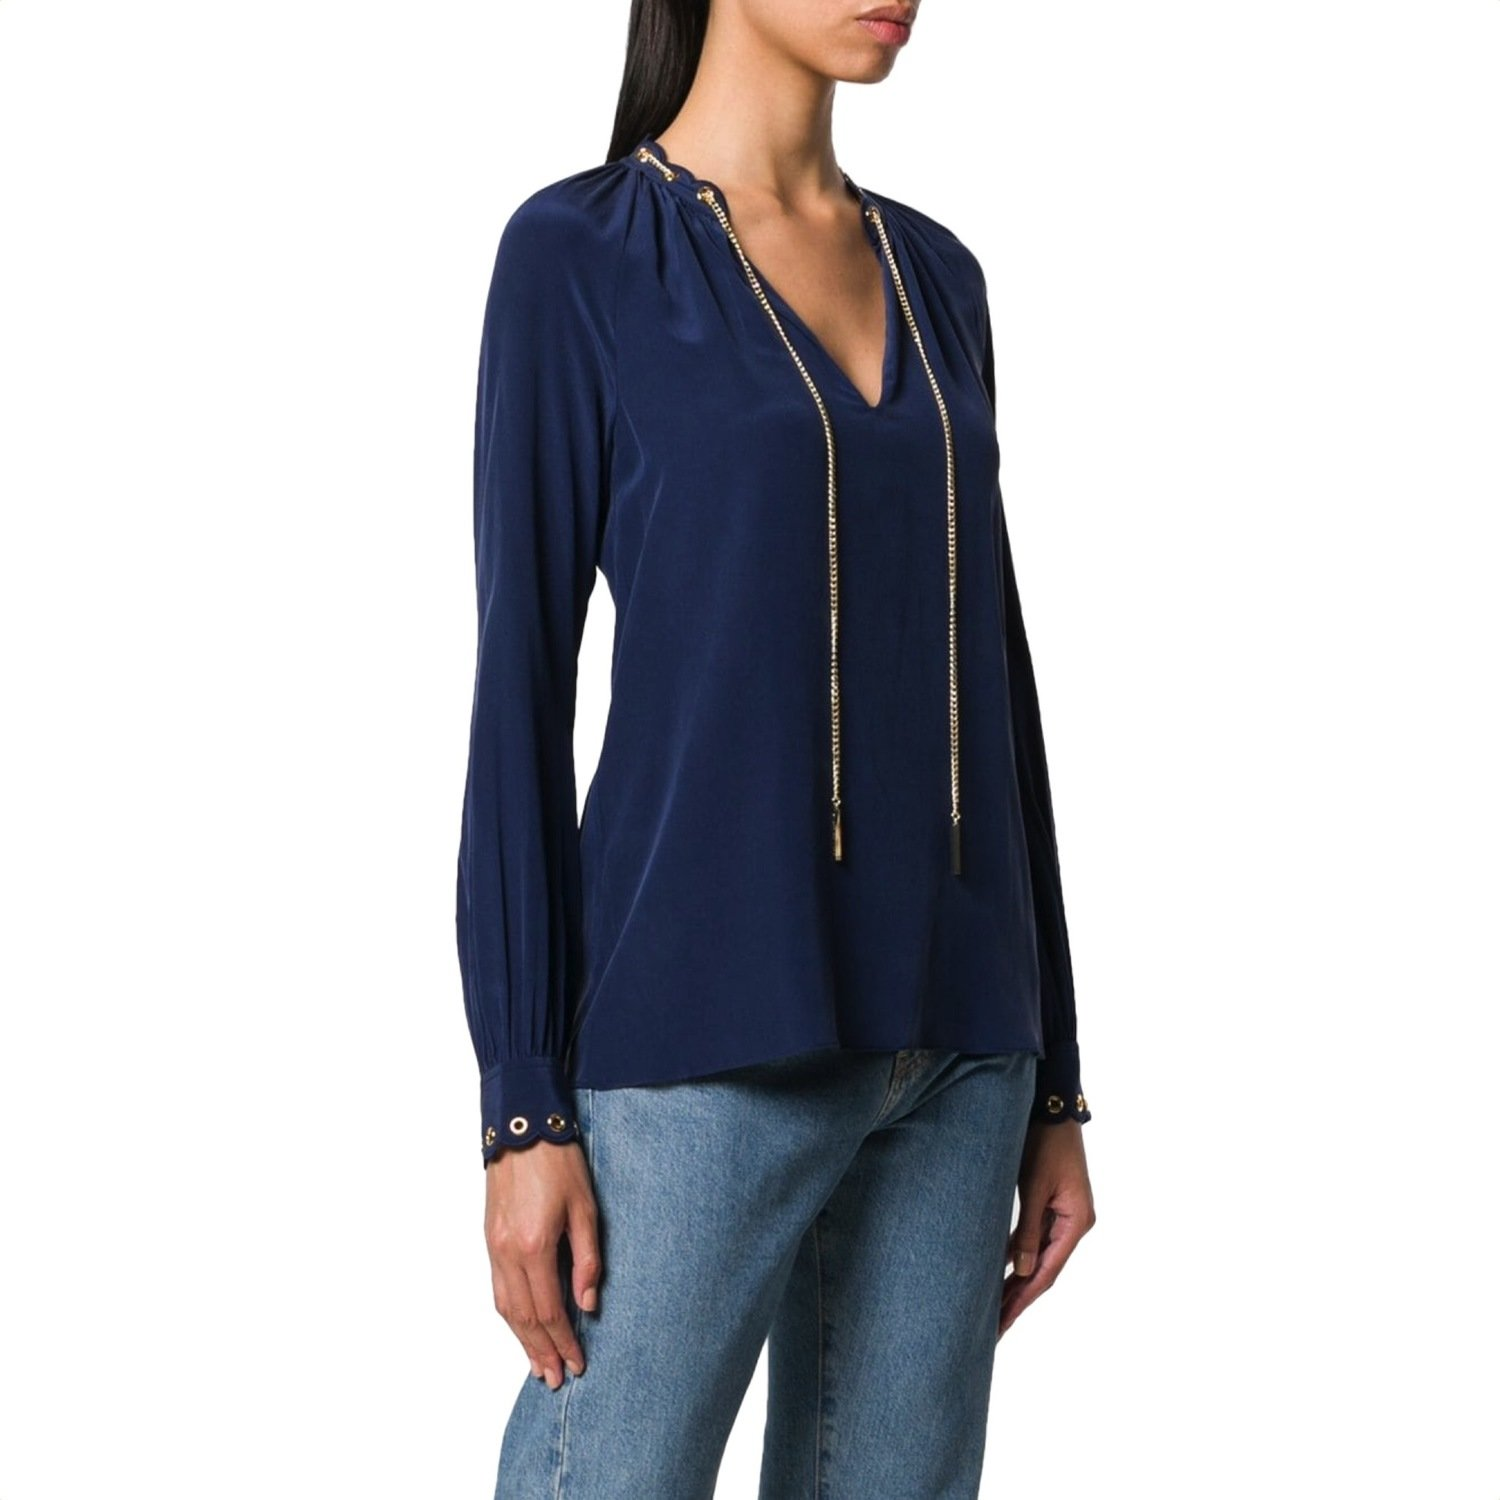 MICHAEL KORS - Blusa in sete con catena - True Navy